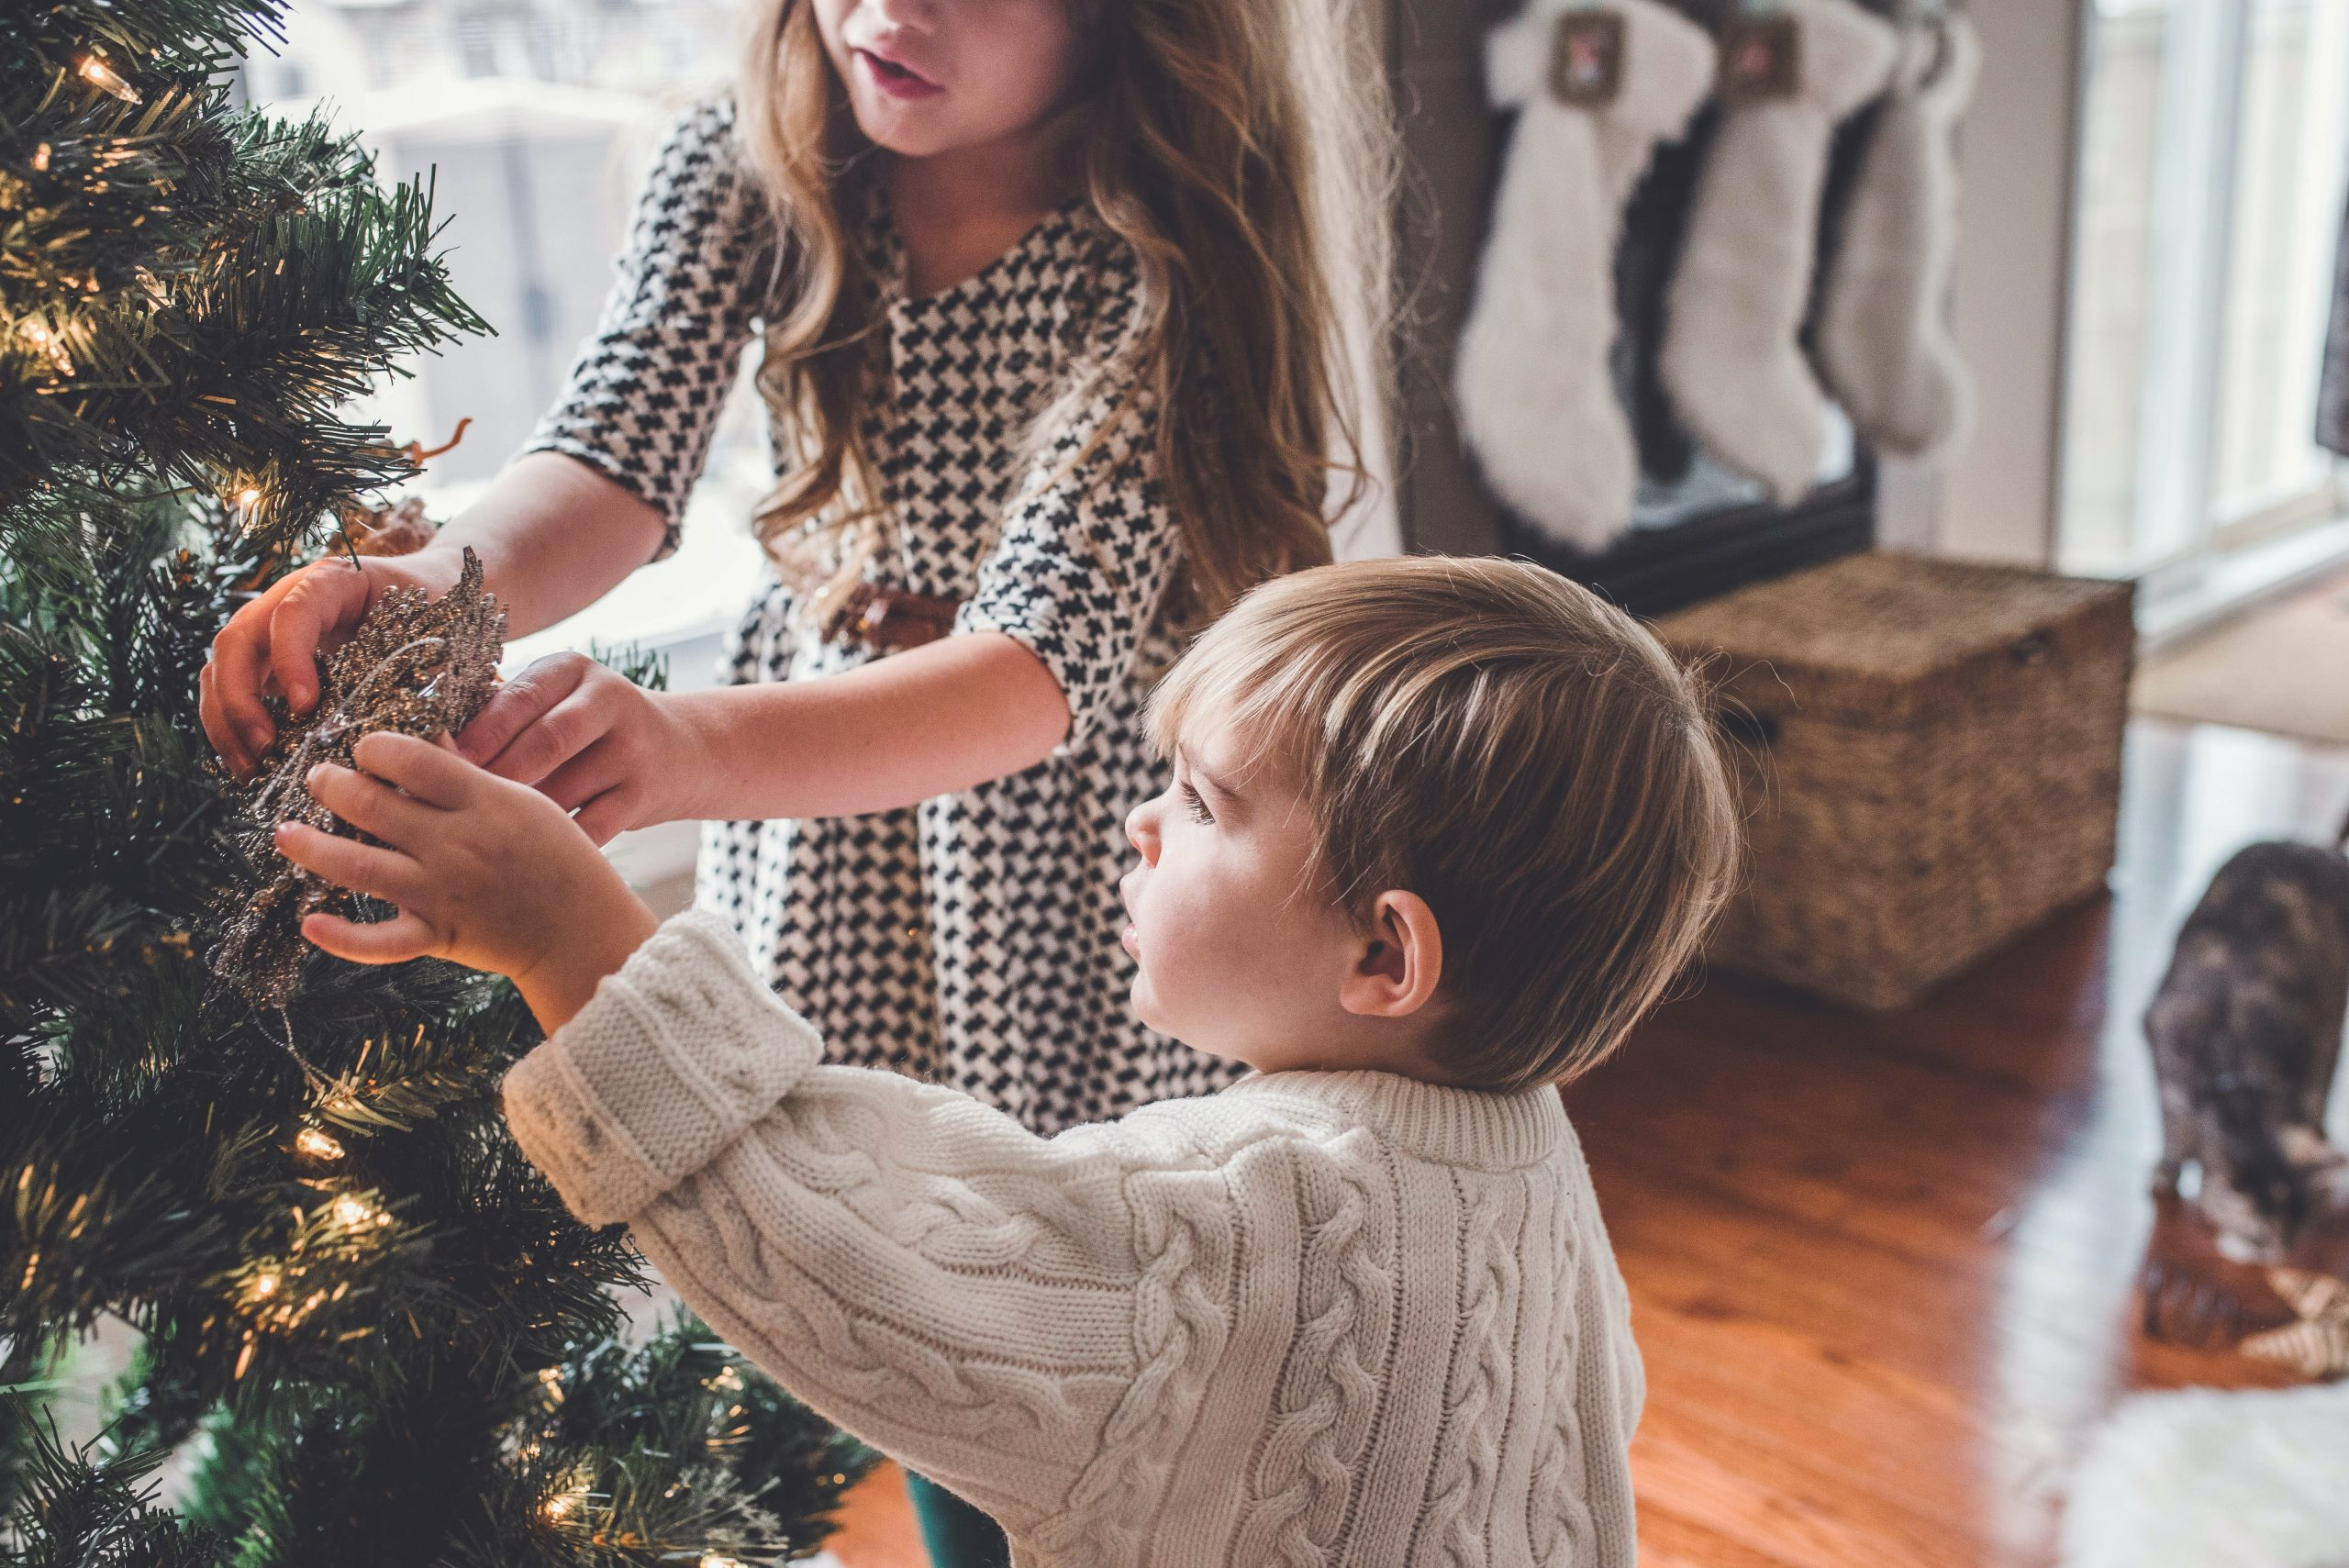 Christmas bubbles explained: what are they and what do they mean for families?